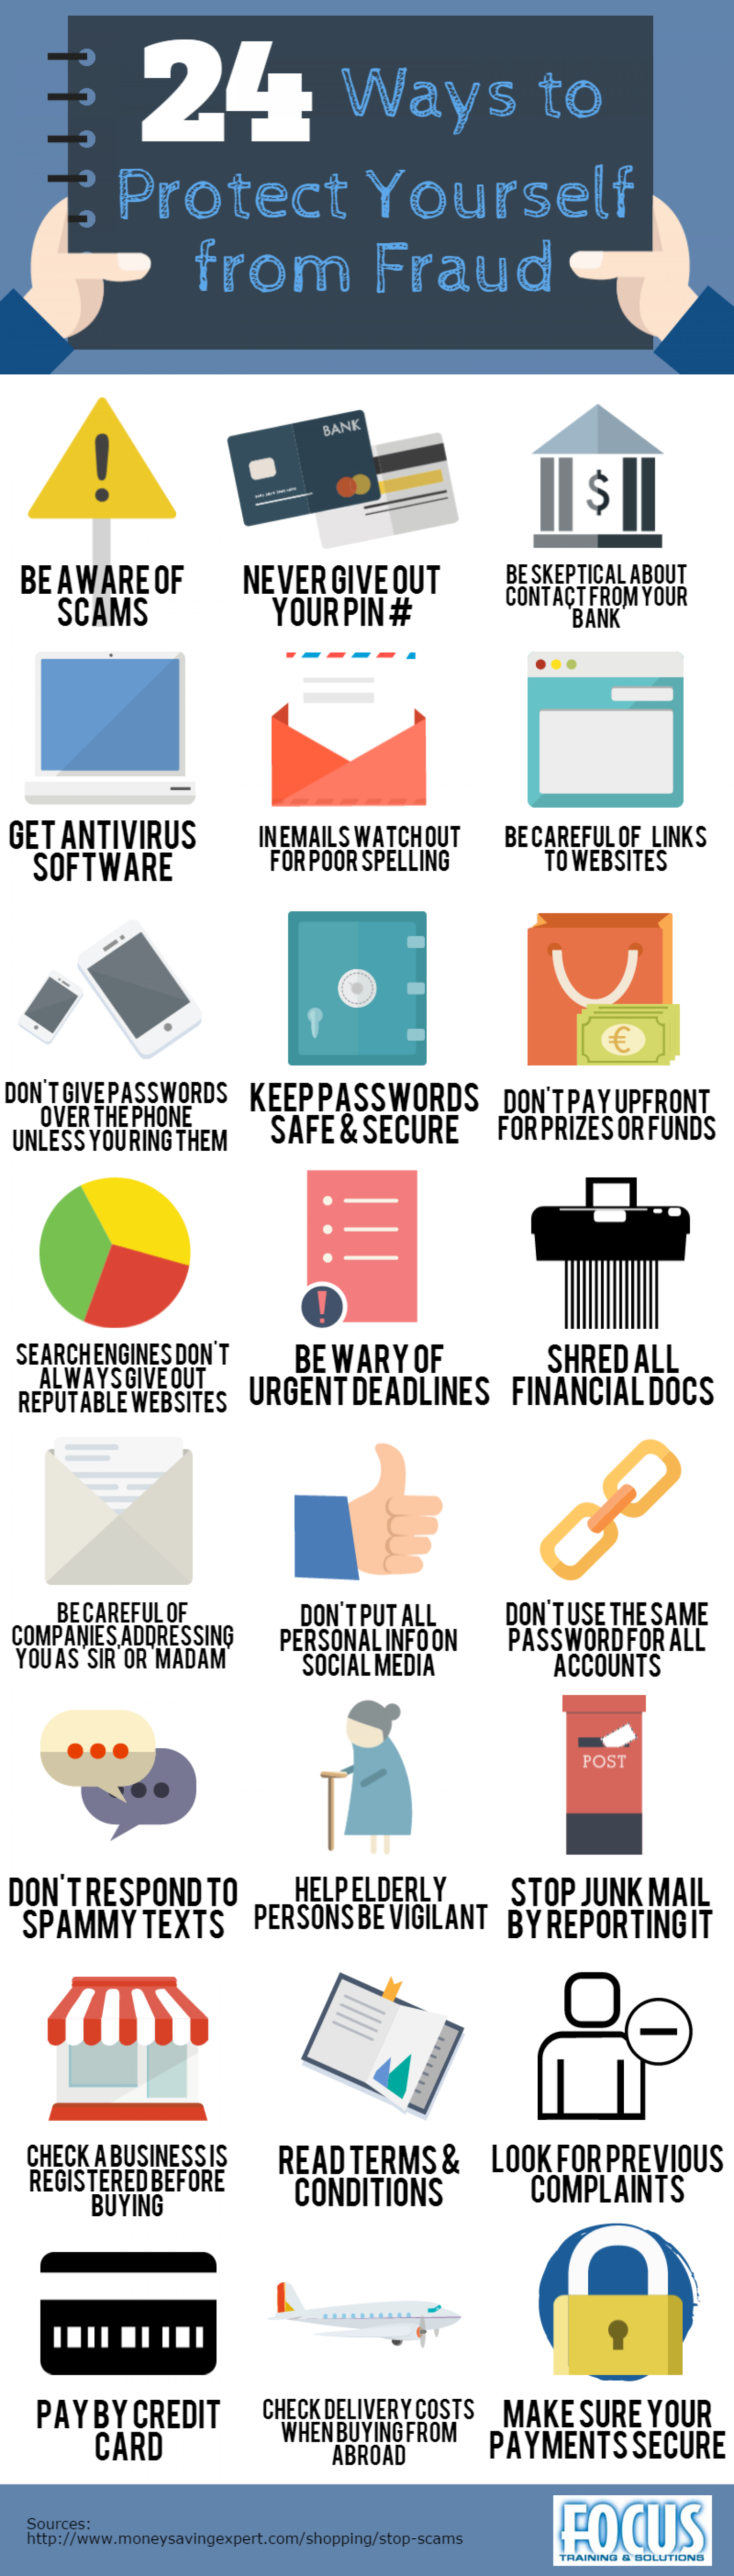 24 Ways to Protect Yourself From Fraud Infographic